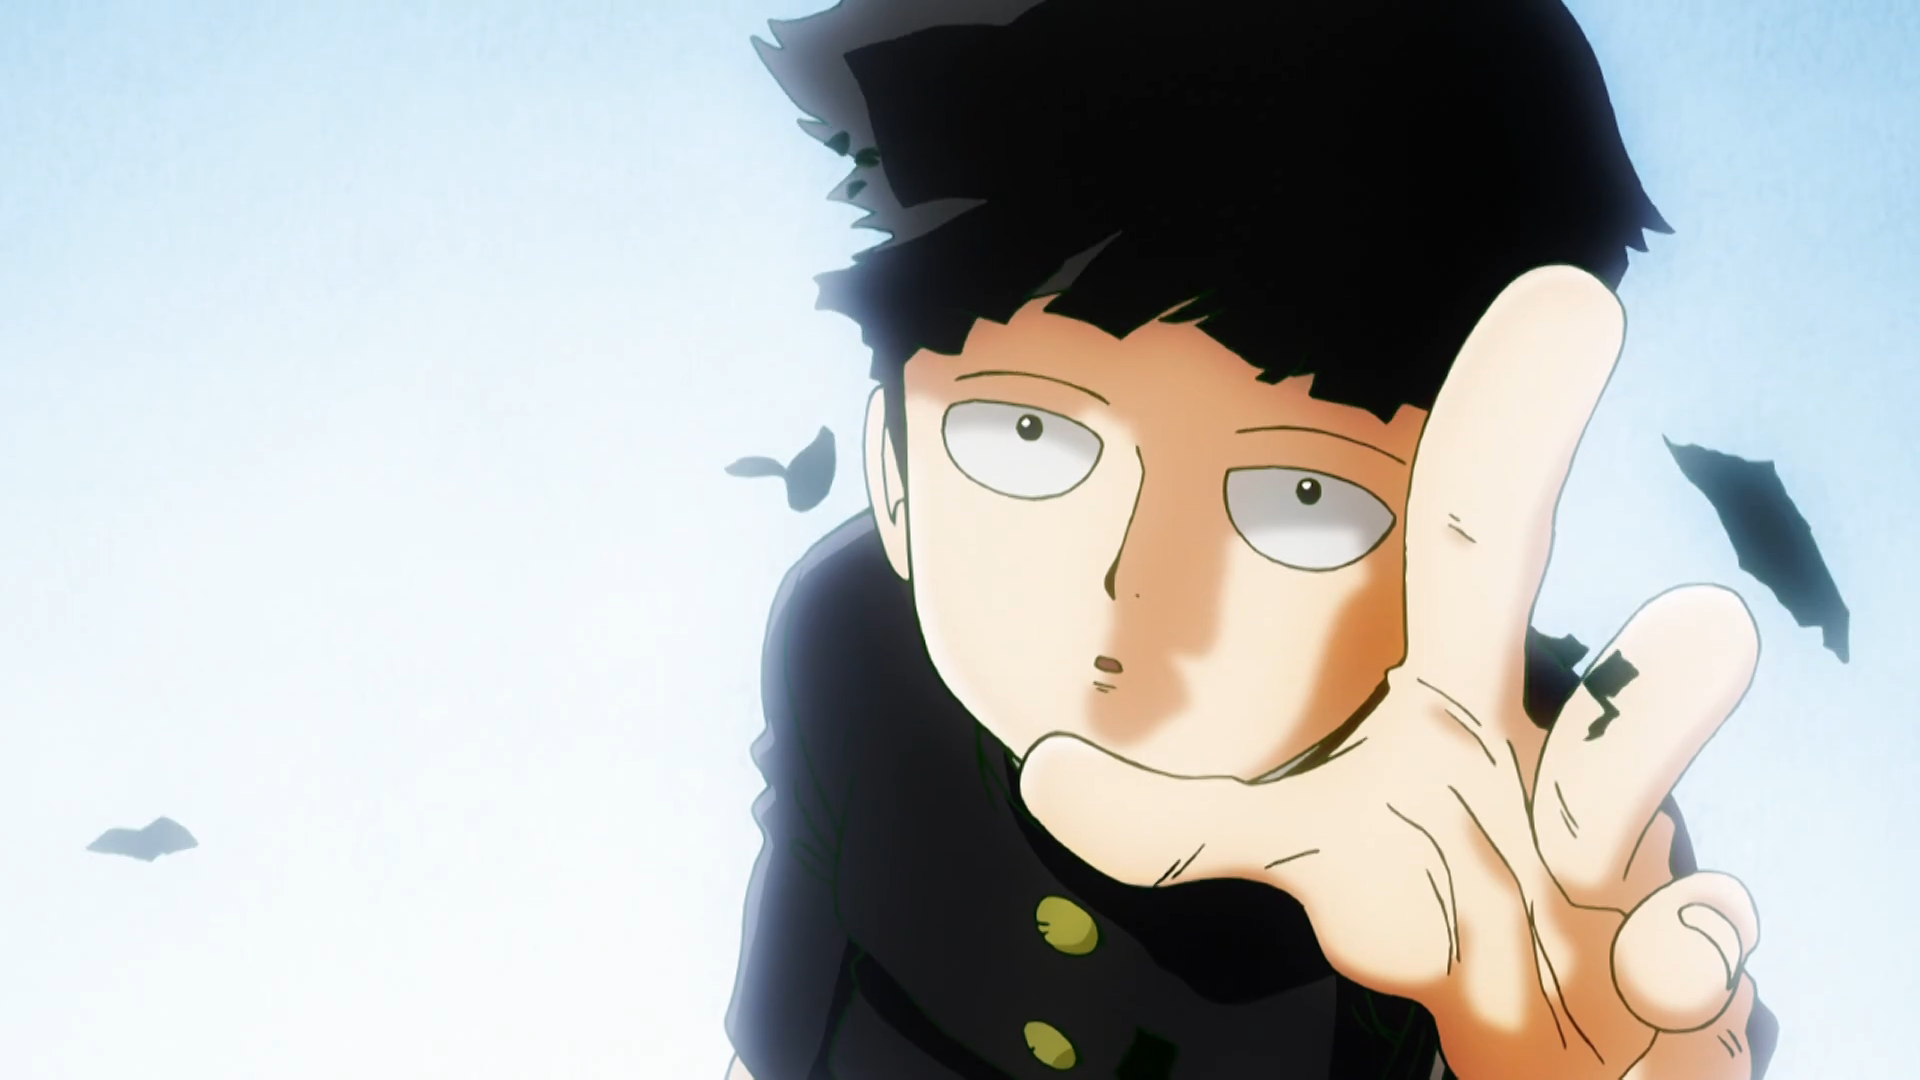 Review Discussion About Mob Psycho 100 The Chuuni Corner